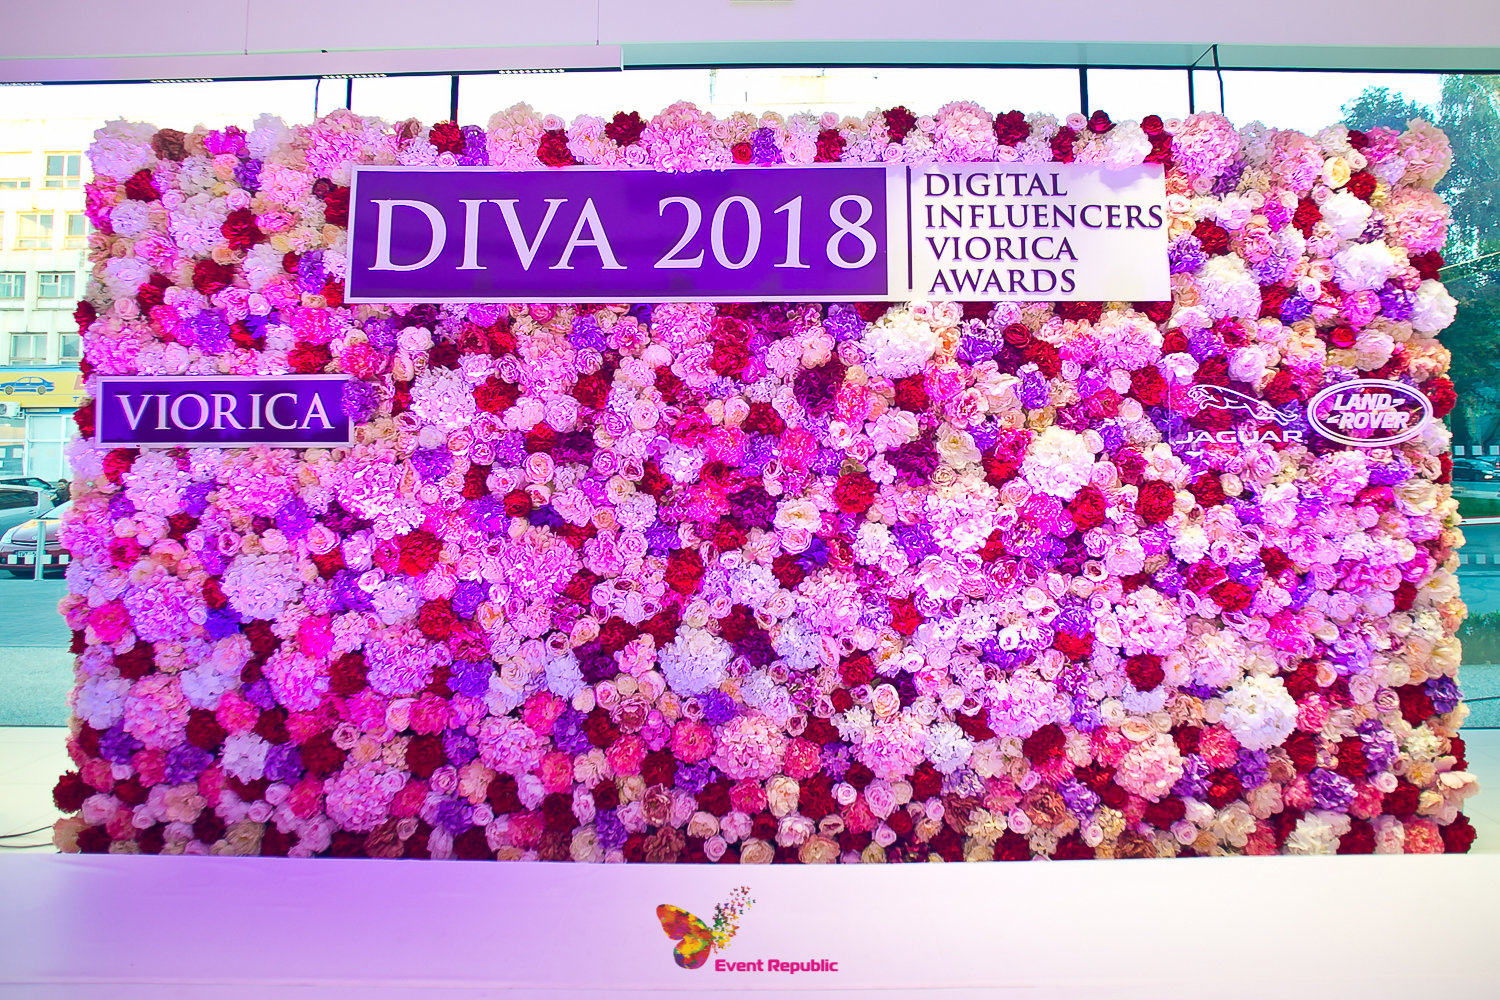 DIVA 2018  (Digital Ifluencer Viorica Awards)